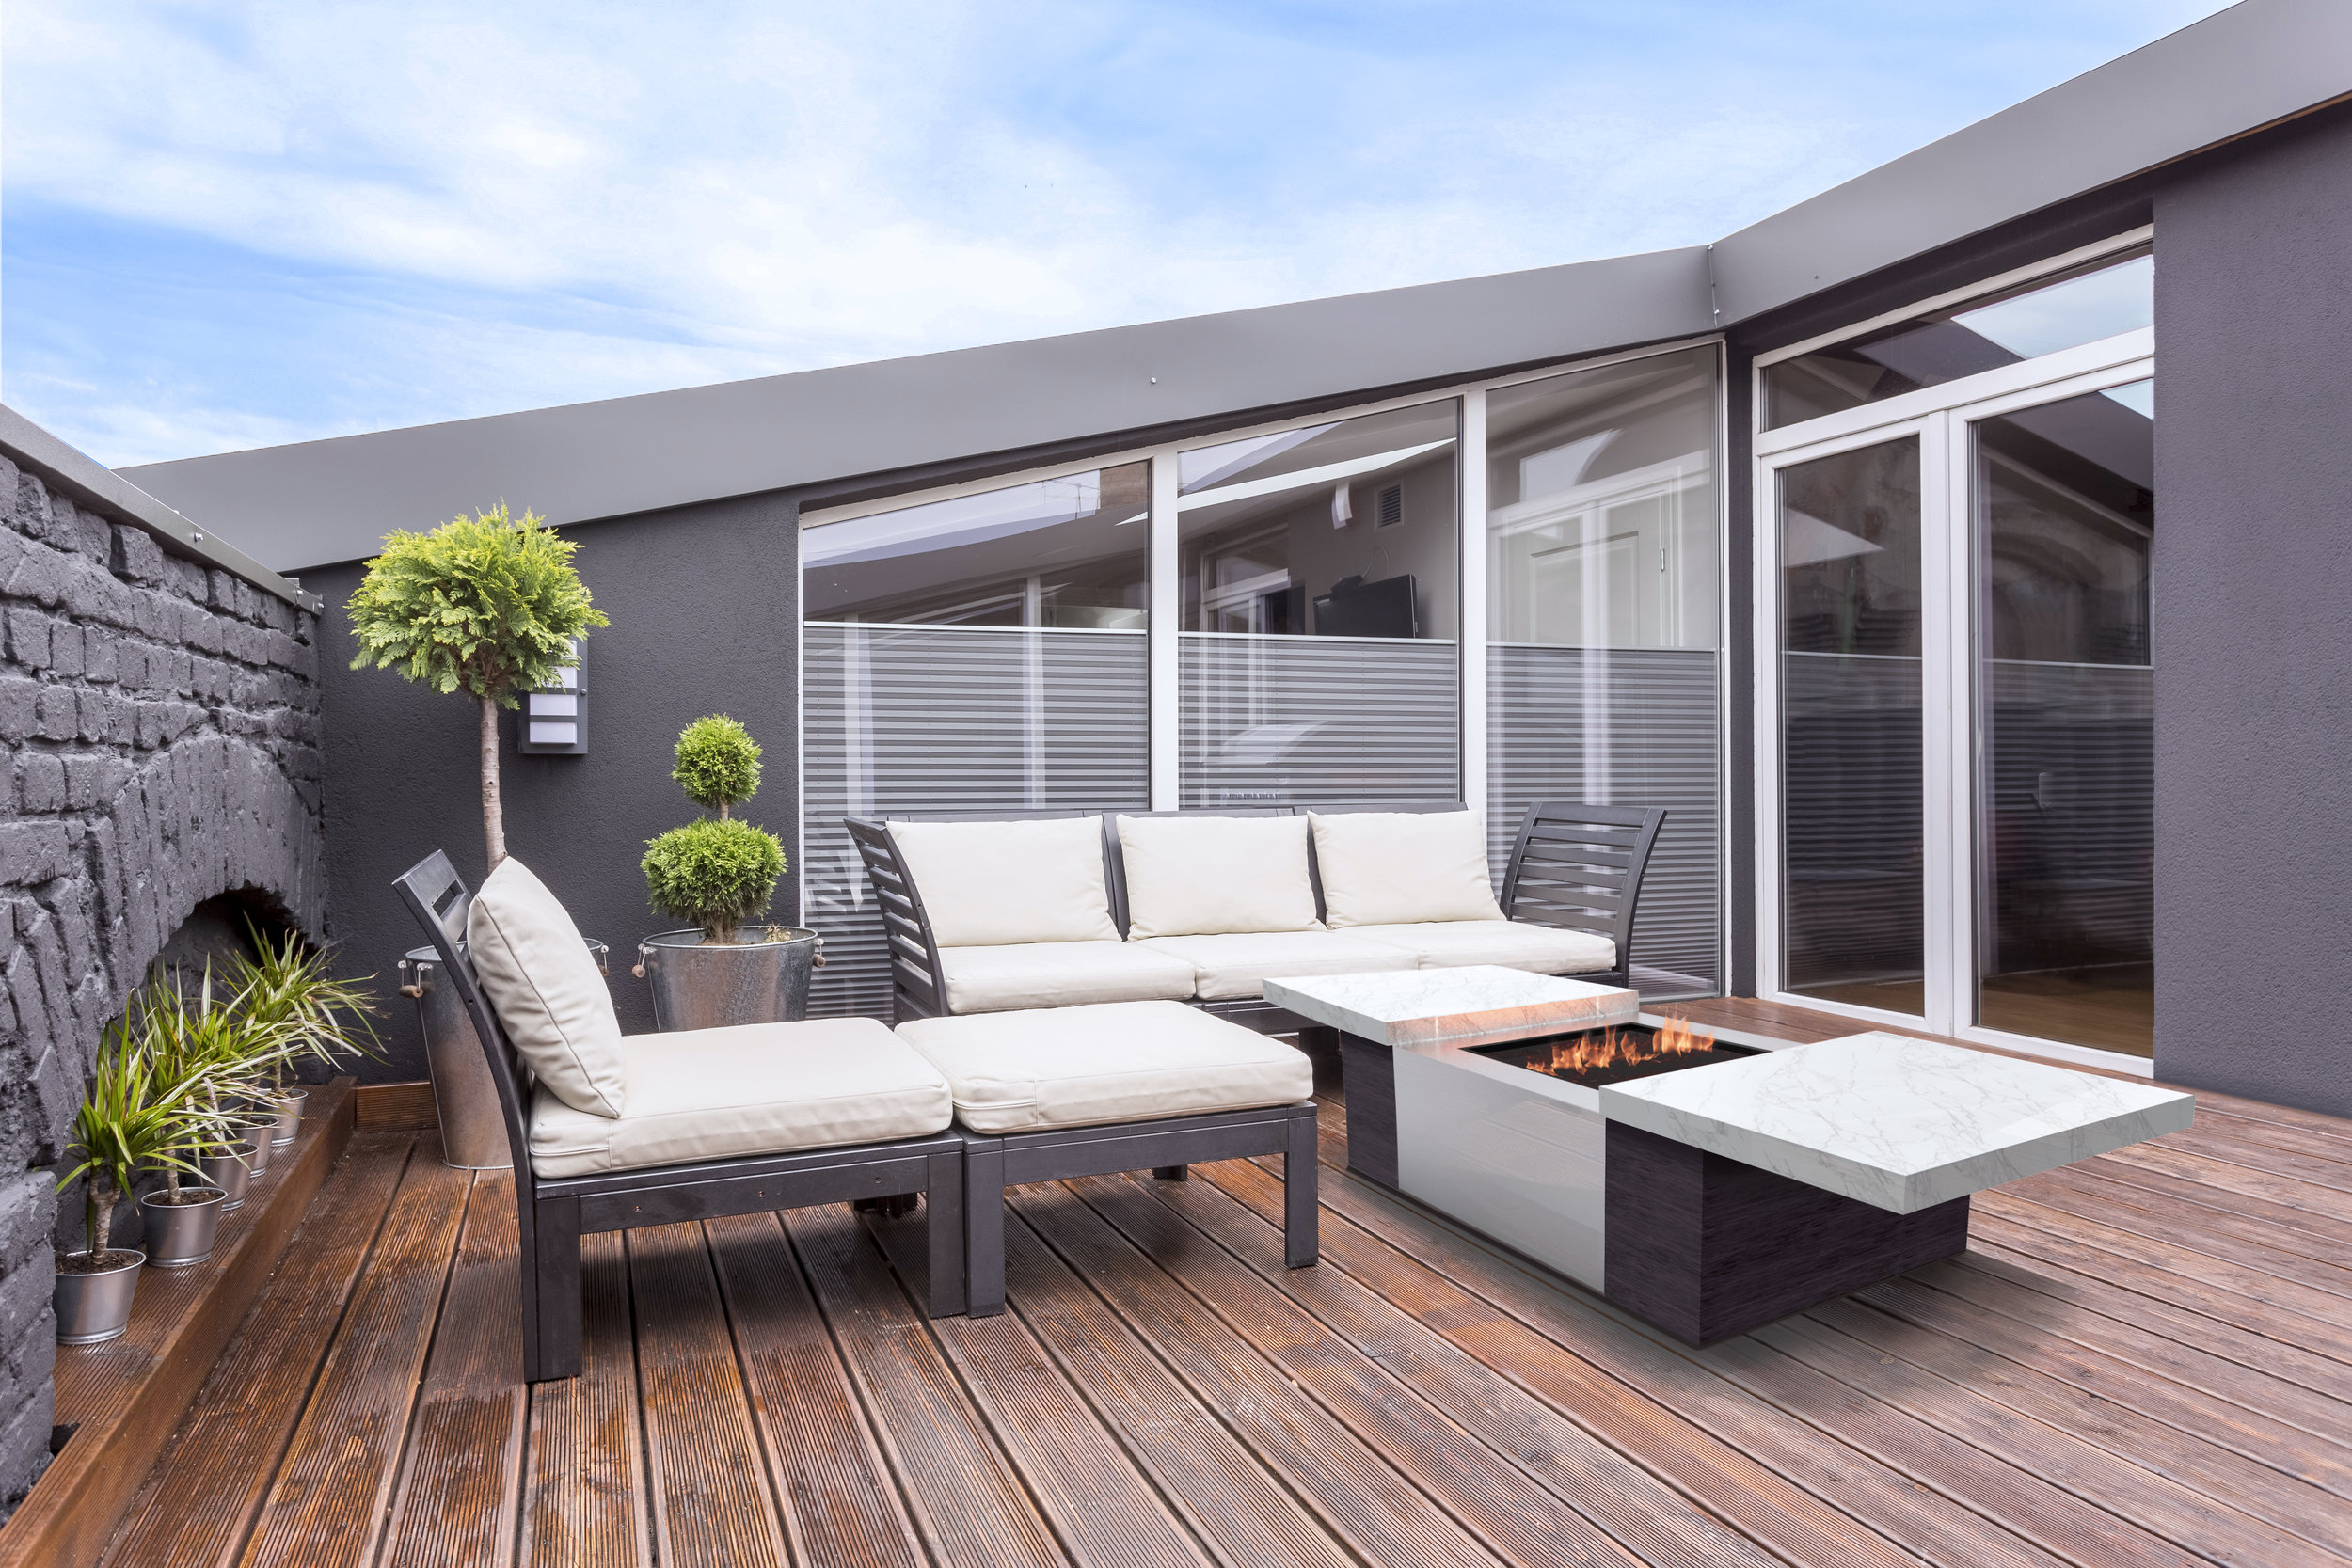 Simple terrace with grill